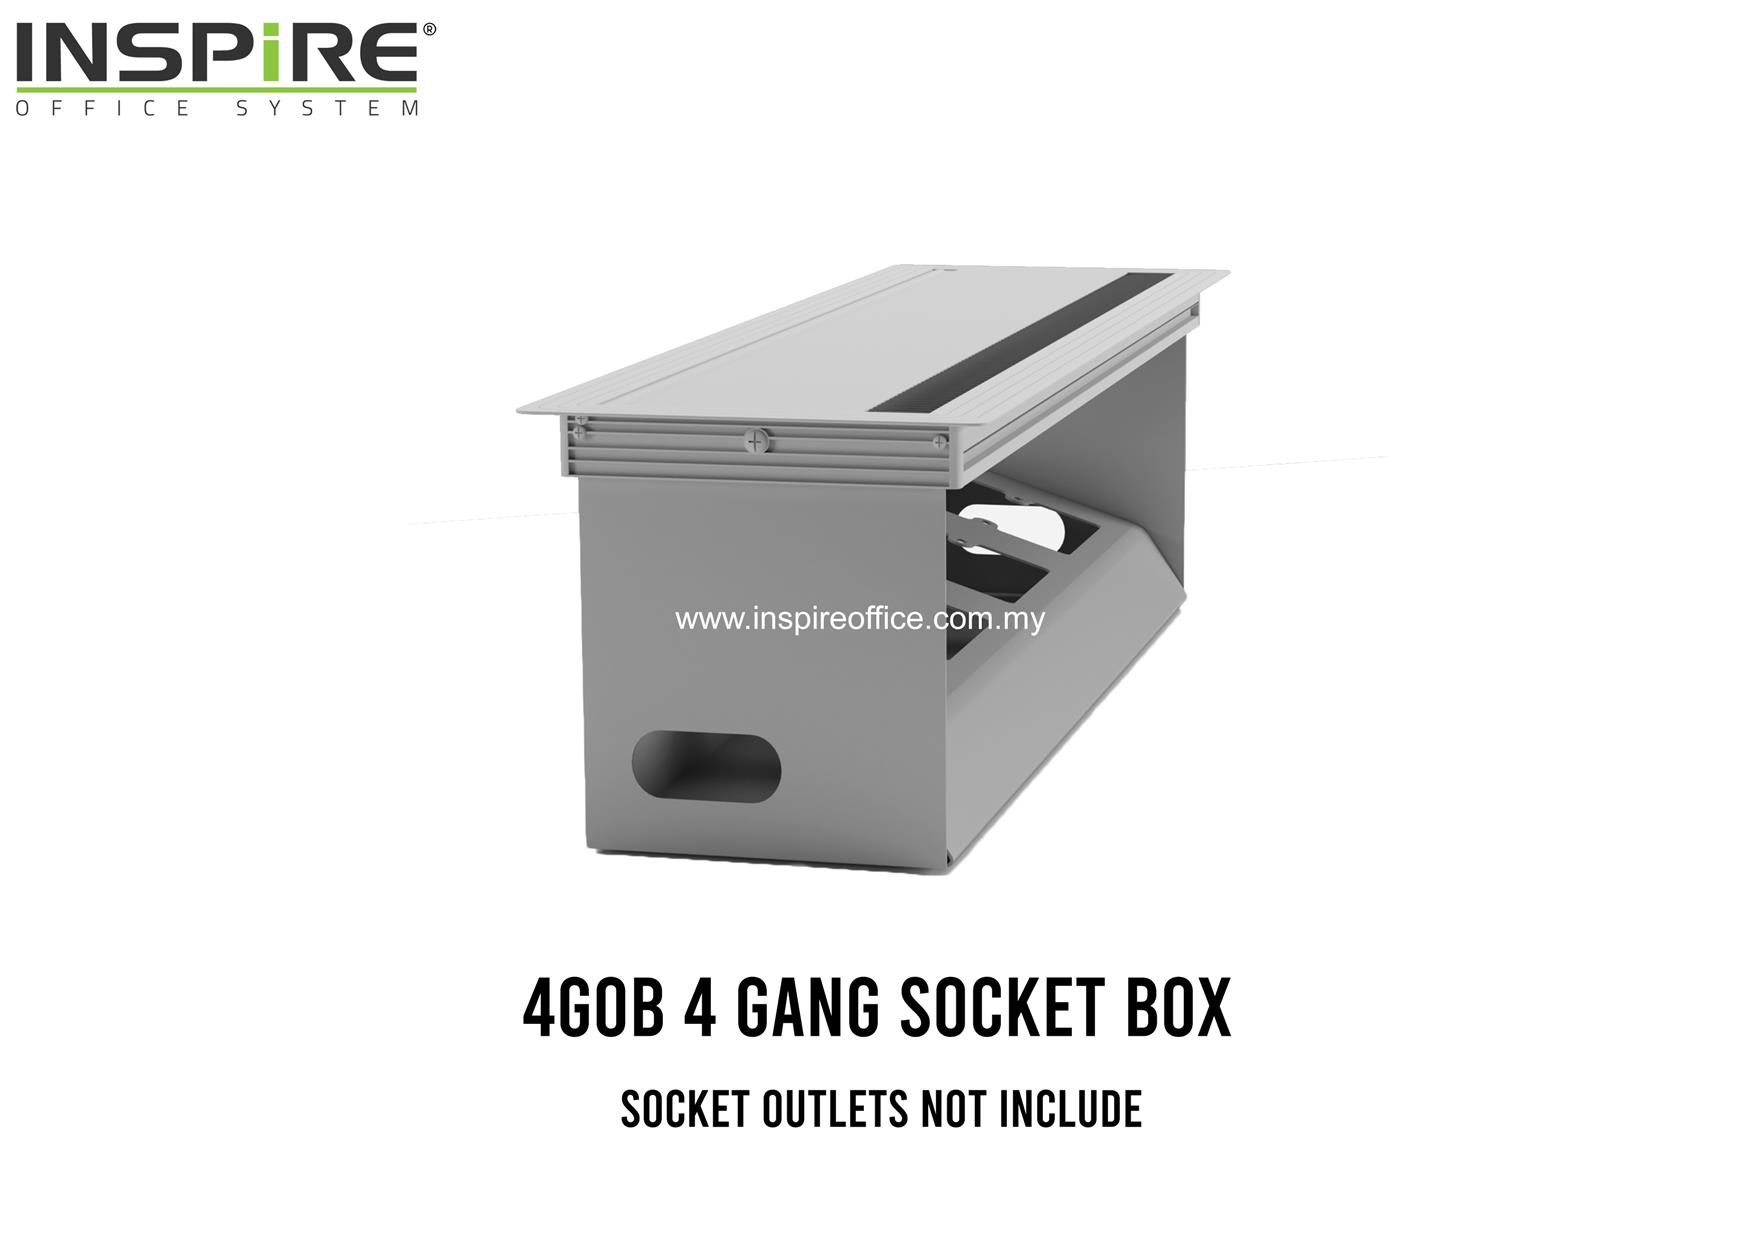 4GOB 4 GANG SOCKET BOX